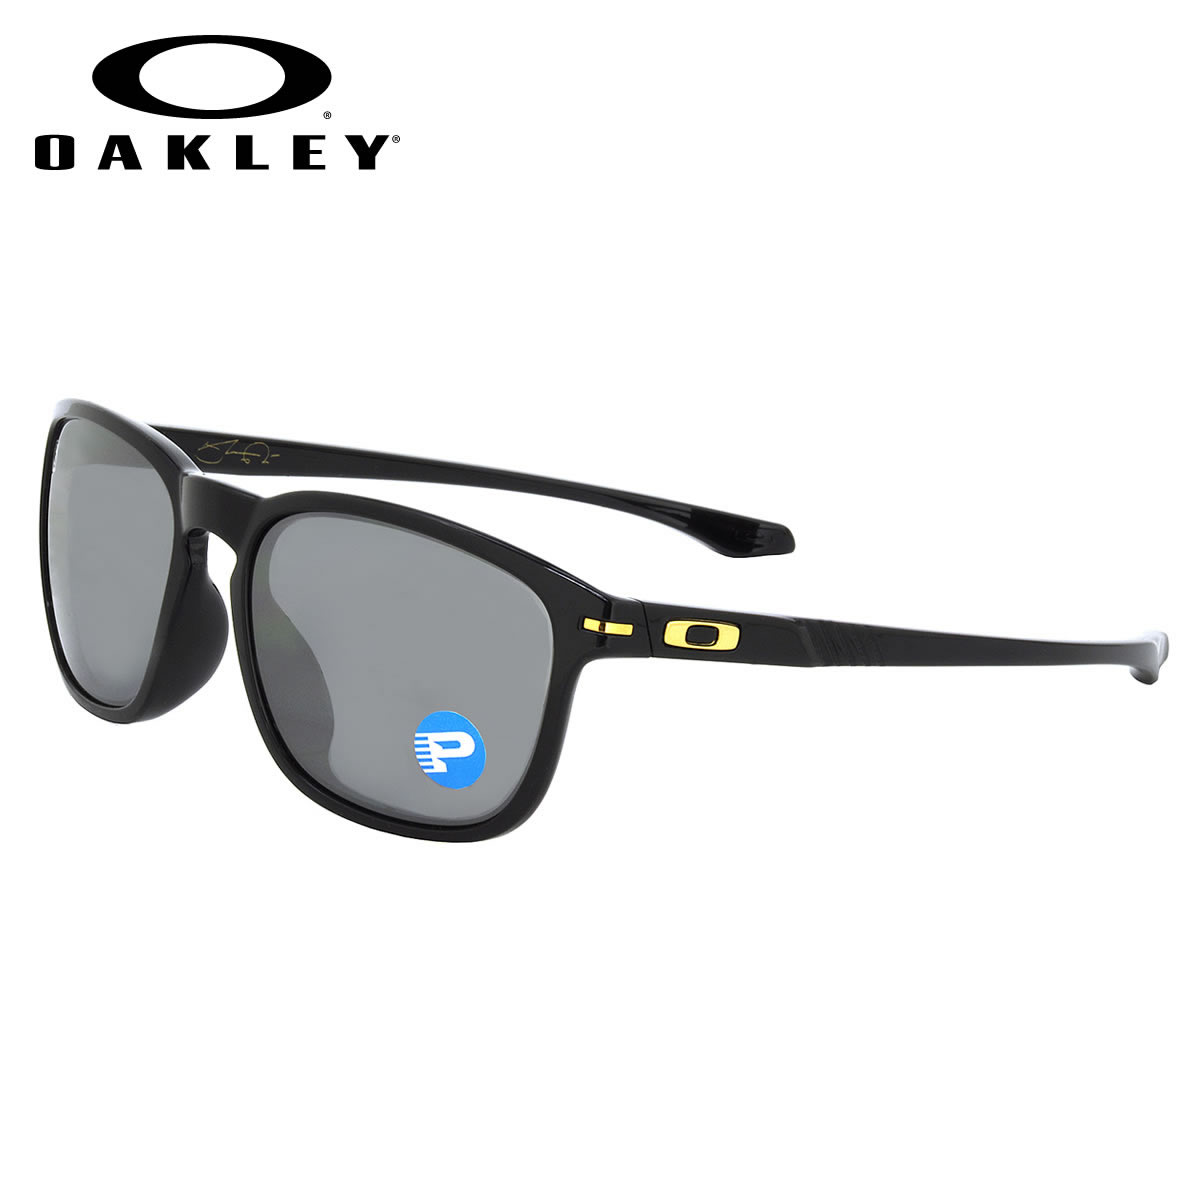 e1f008f4c2 Optical Shop Thats  Point up to eight times! (Oakley) men s women s ...